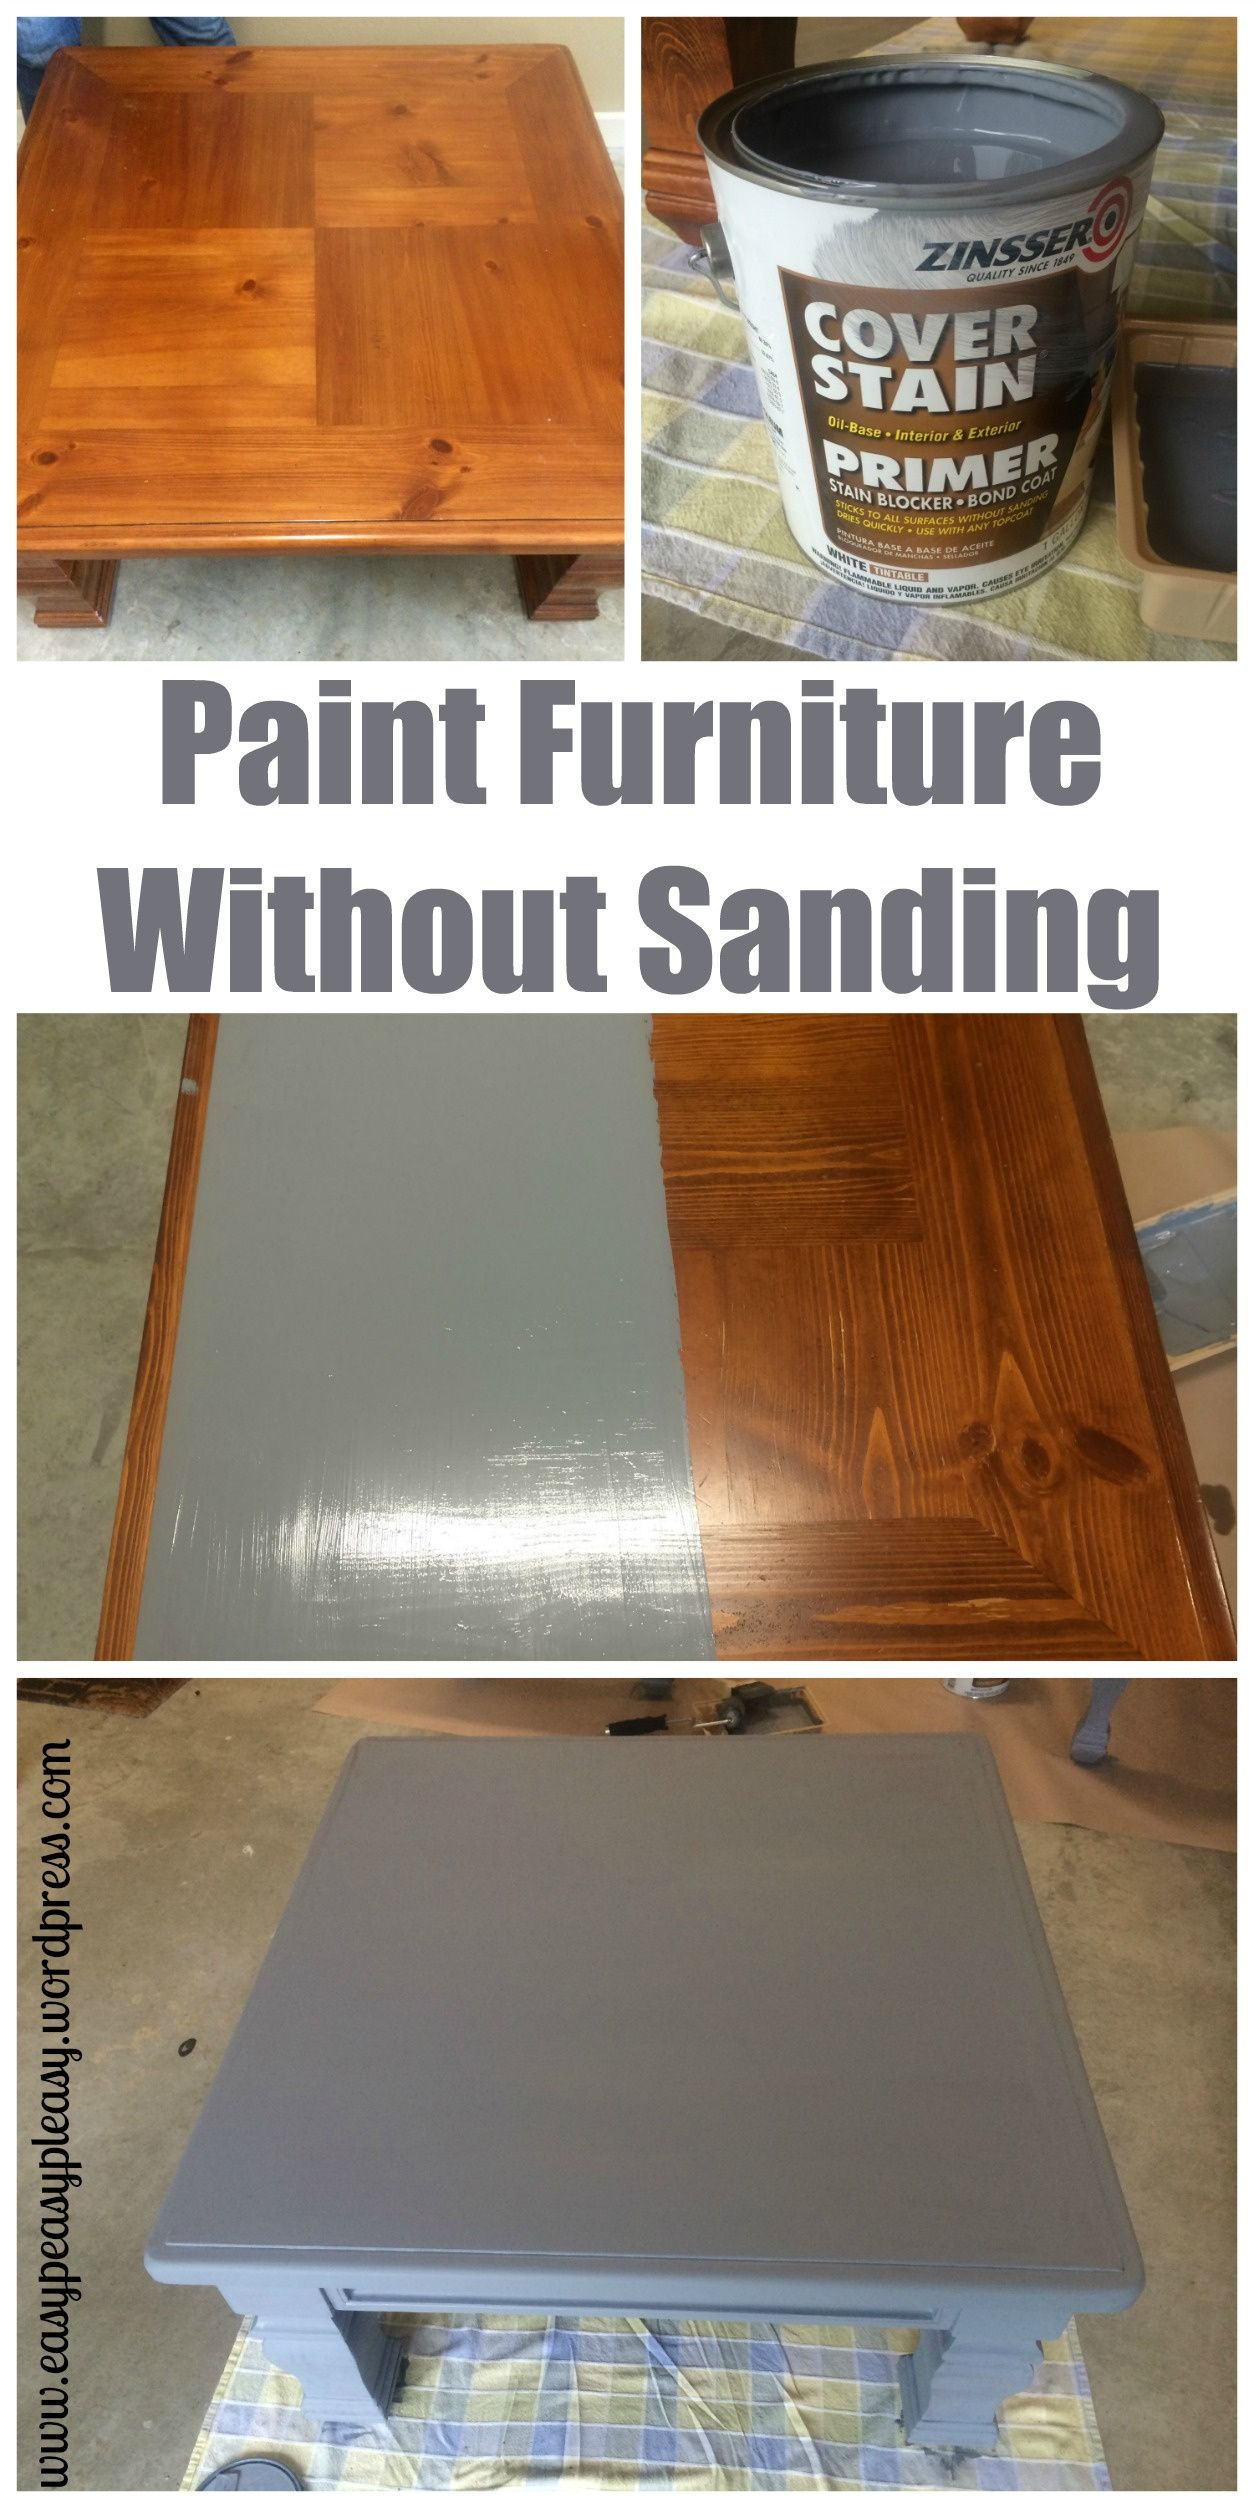 Varnished Furniture Without Sanding